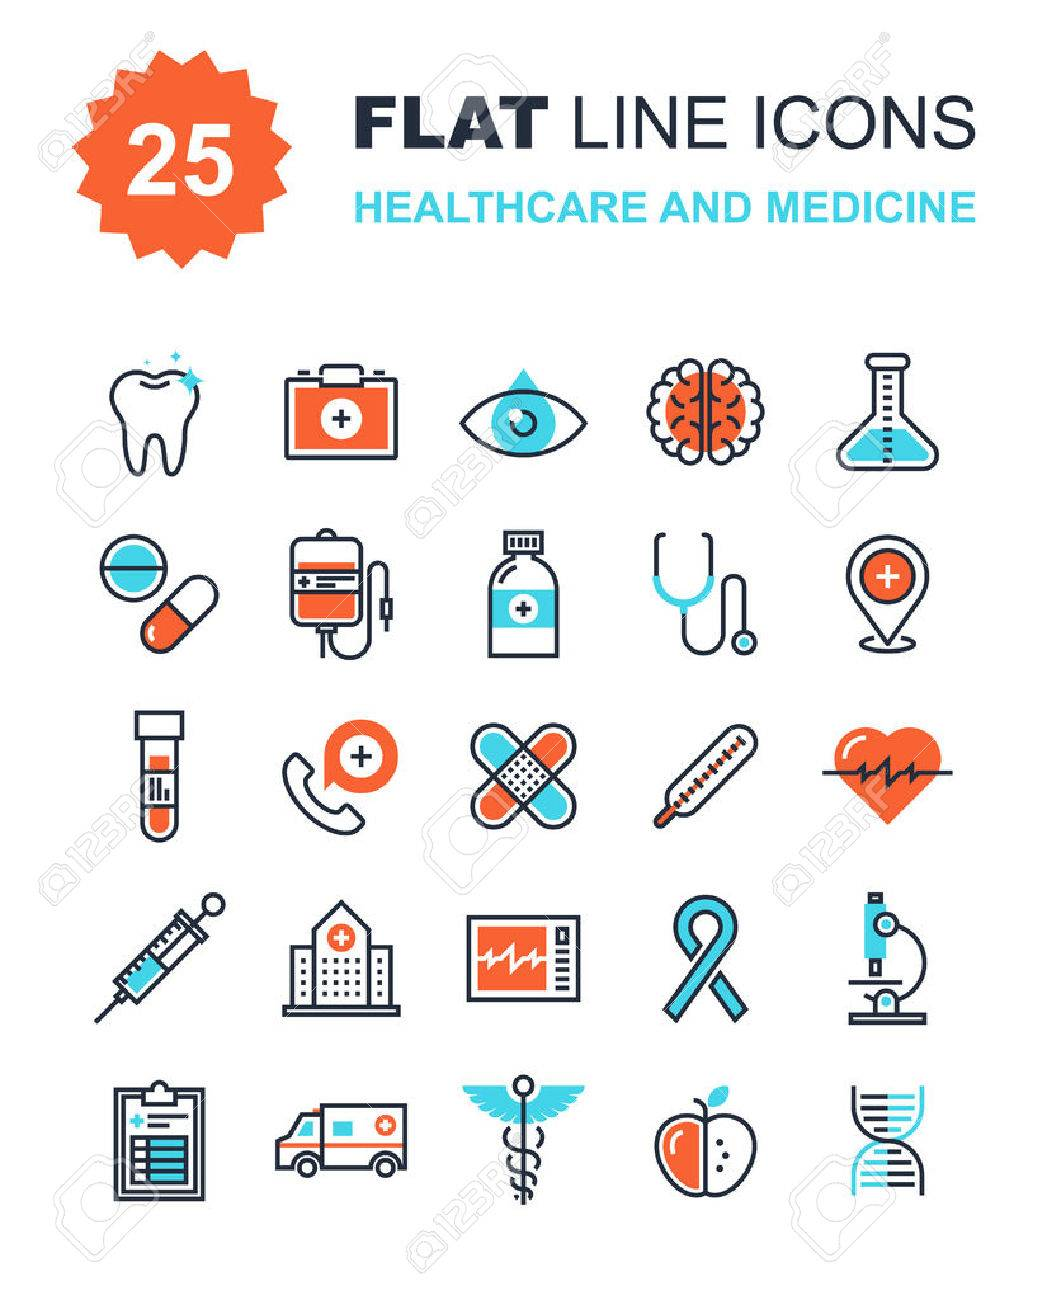 Abstract vector collection of flat line healthcare and medicine icons. Elements for mobile and web applications. Stock Vector - 43549825